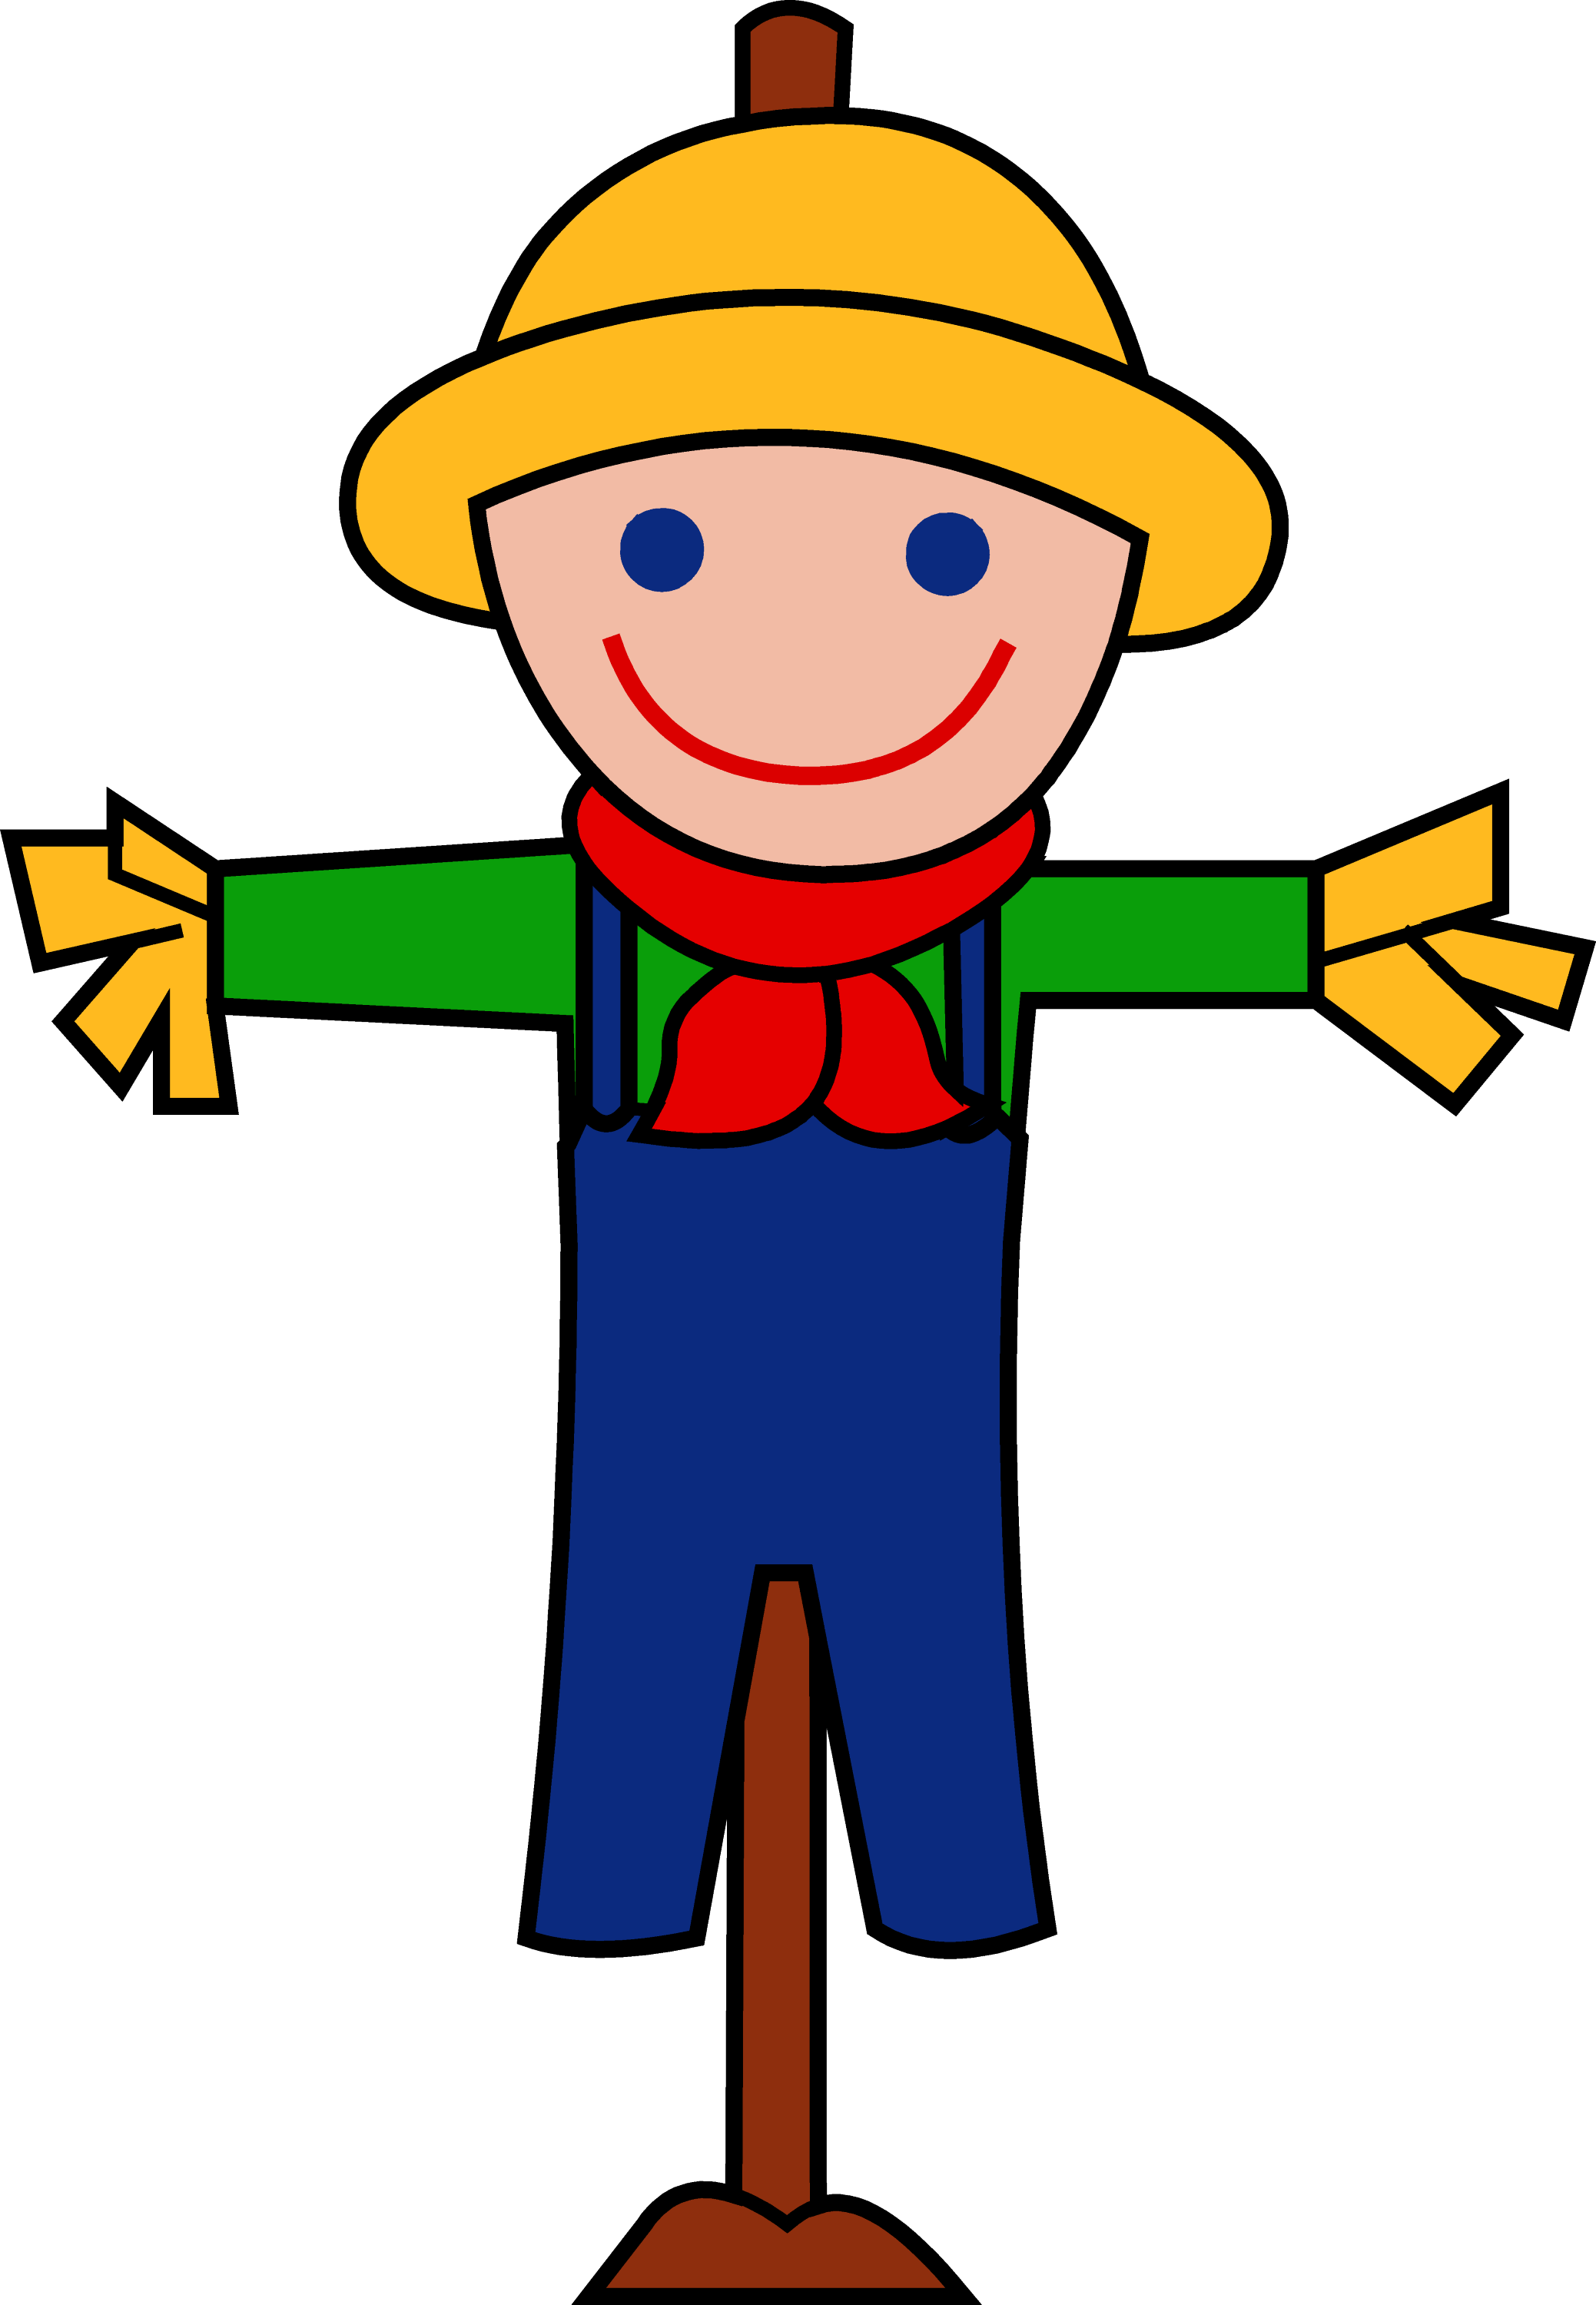 cute happy autumn scarecrow free clip art rh sweetclipart com free cute clip art images free cute clipart